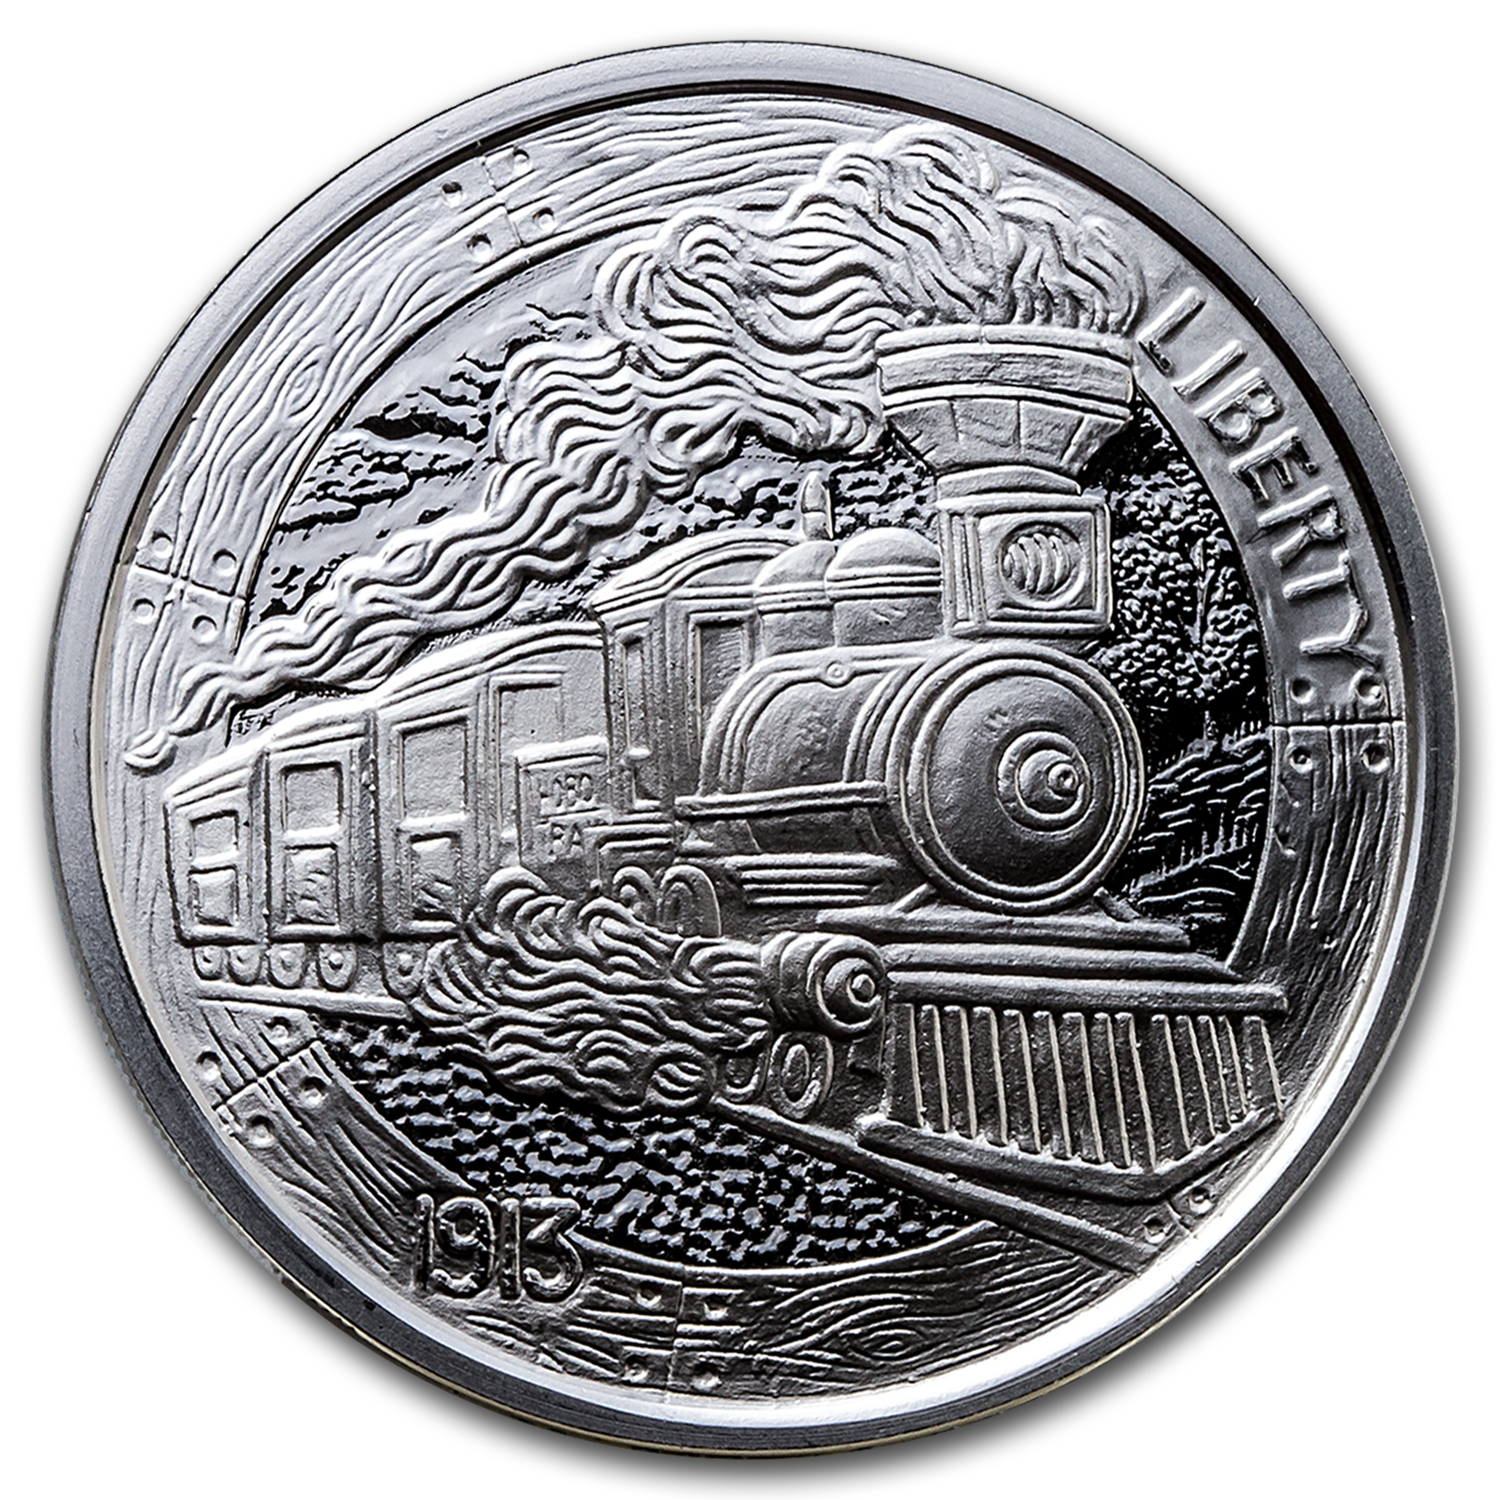 1 oz Silver Round - Hobo Nickel Replica (The Train)